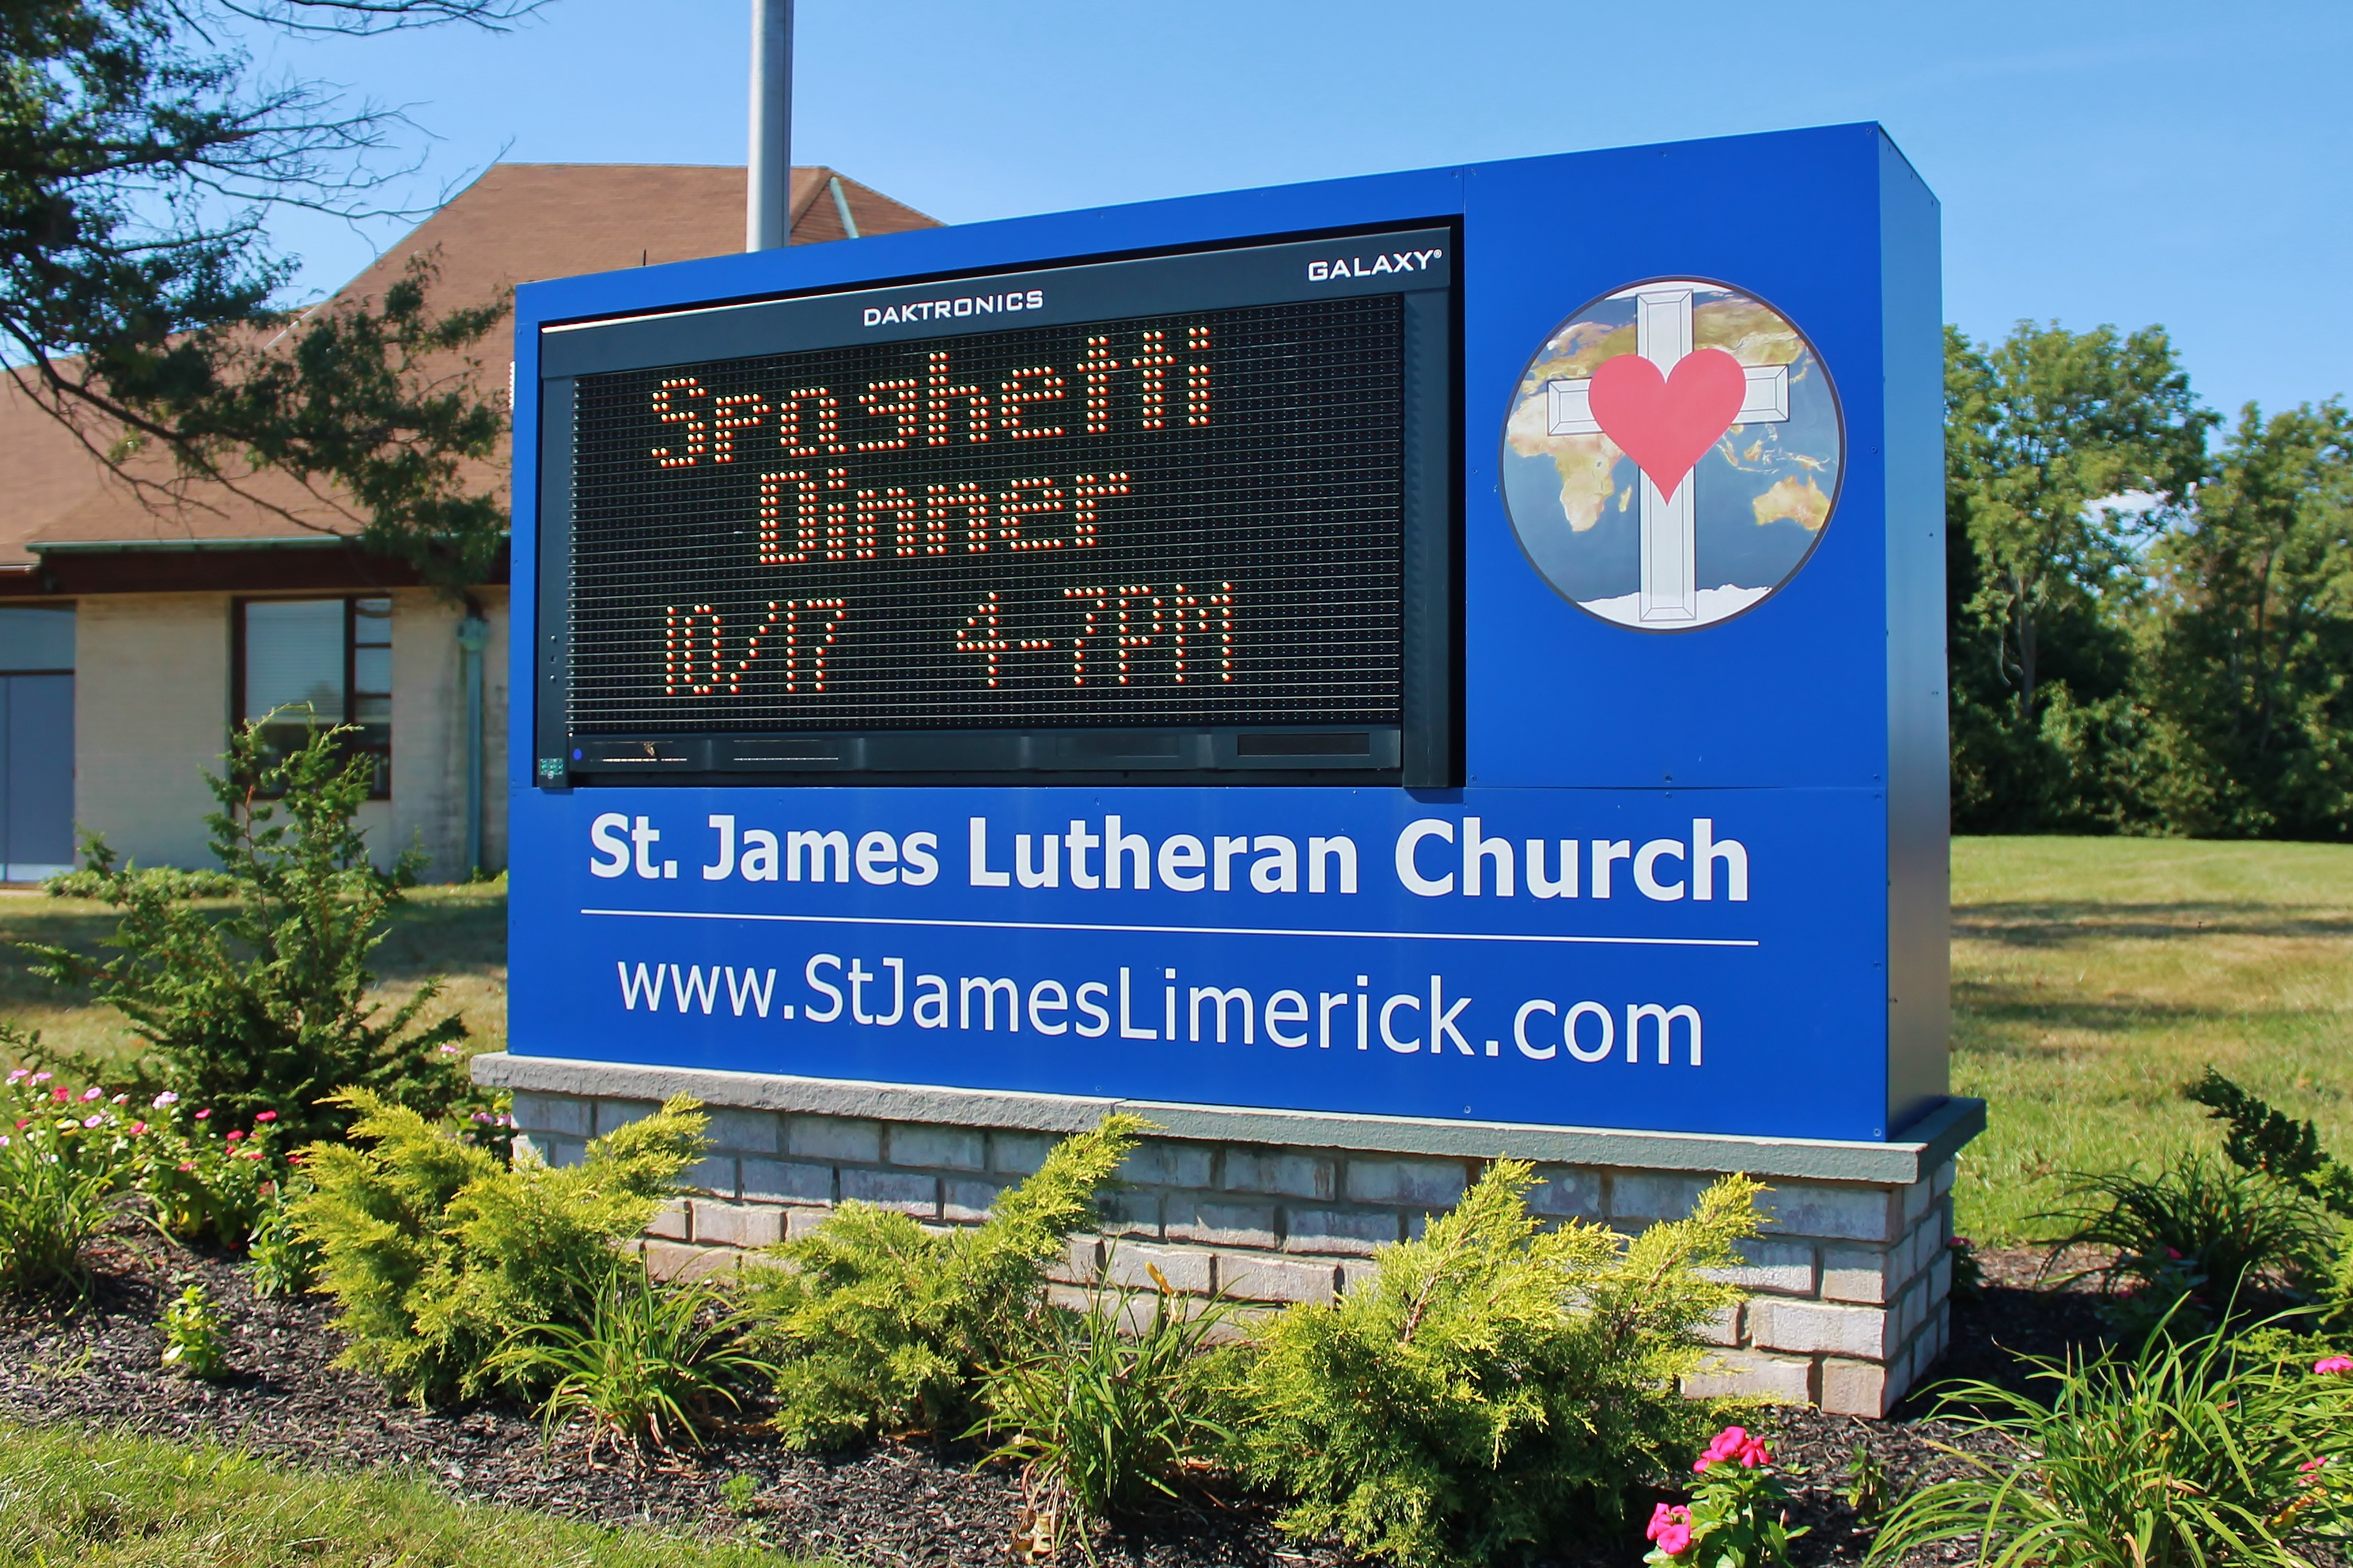 St. James Lutheran Church